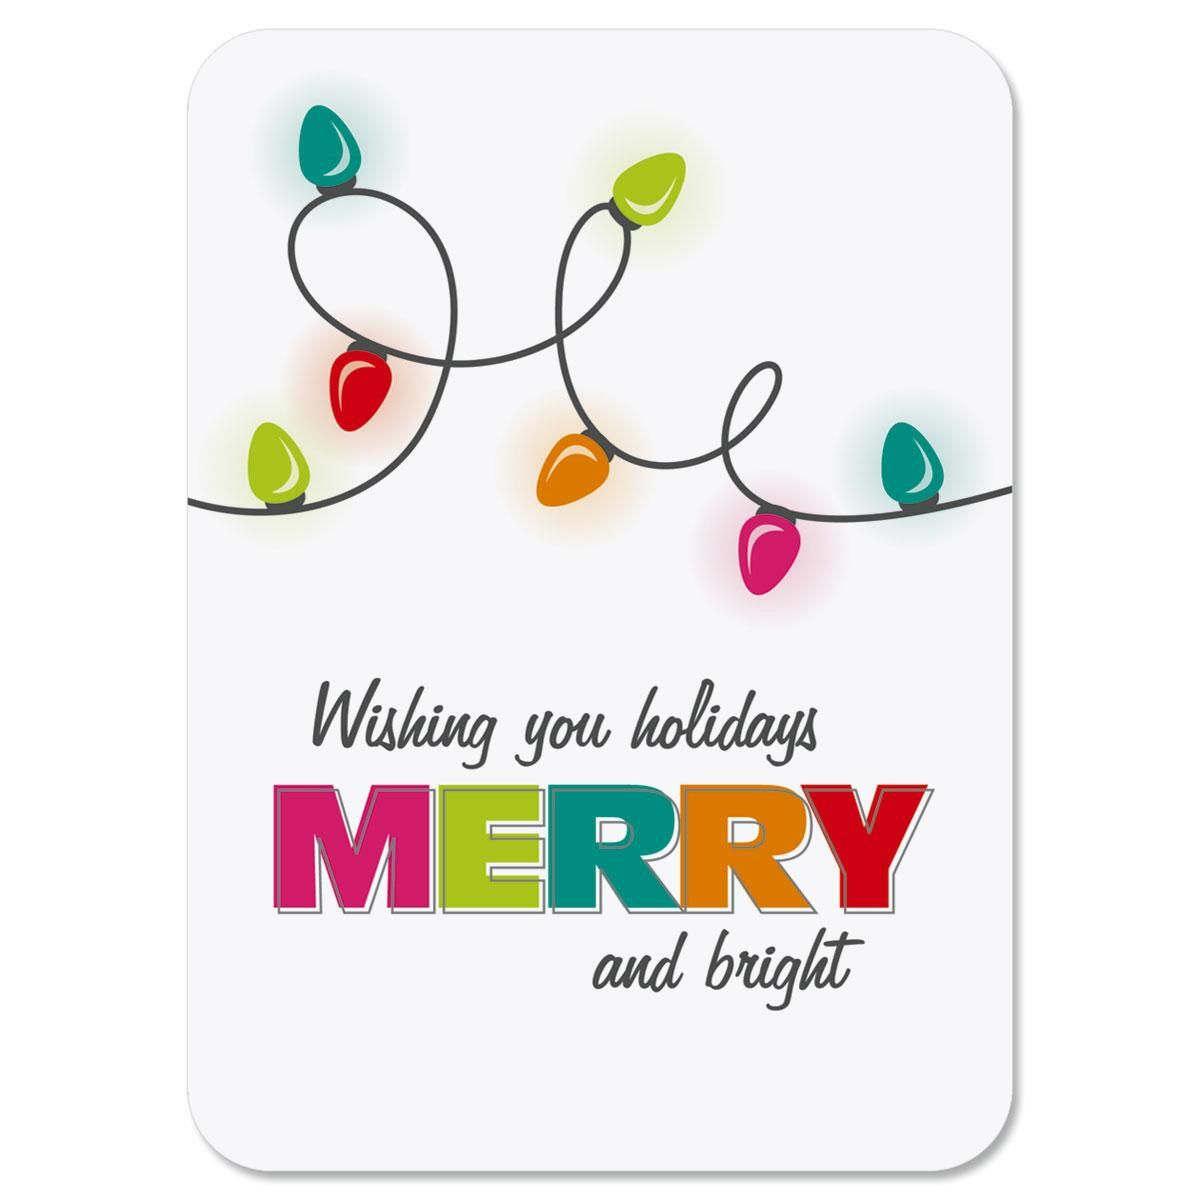 Christmas Lights Nonpersonalized Christmas Cards - Set of 18